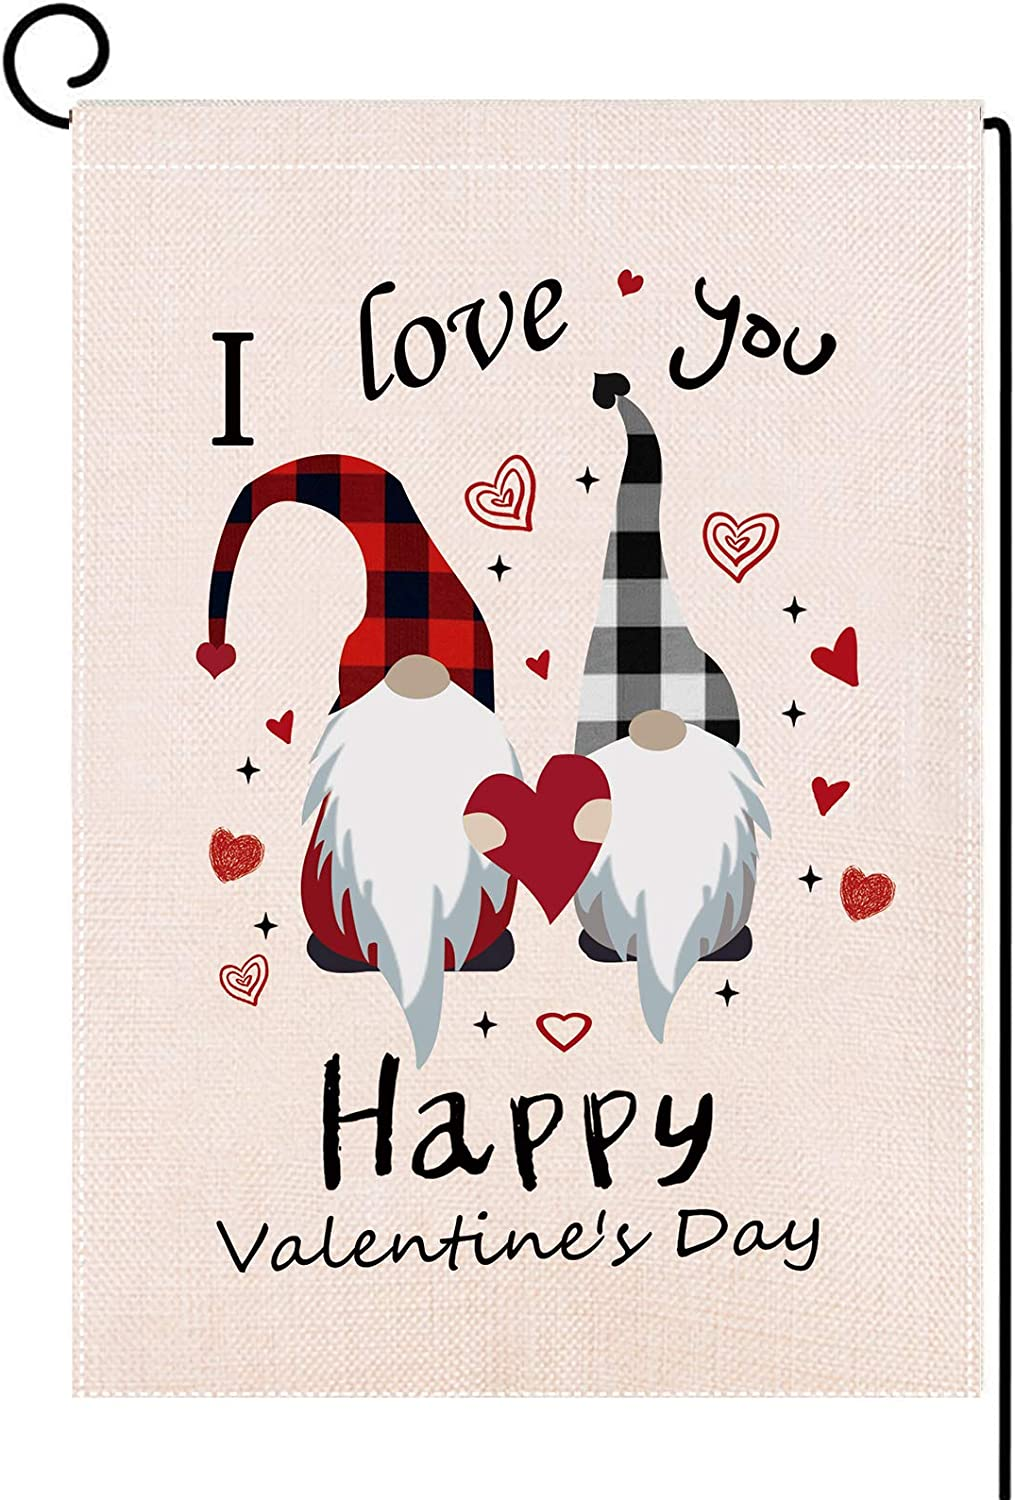 Delokey Gnomes Valantines Day Garden Flag-Double-Sided Happy Valentine's Day Yard Burlap Banner,Flag for Love,Yard Lawn Porch Party (Red Plaid)